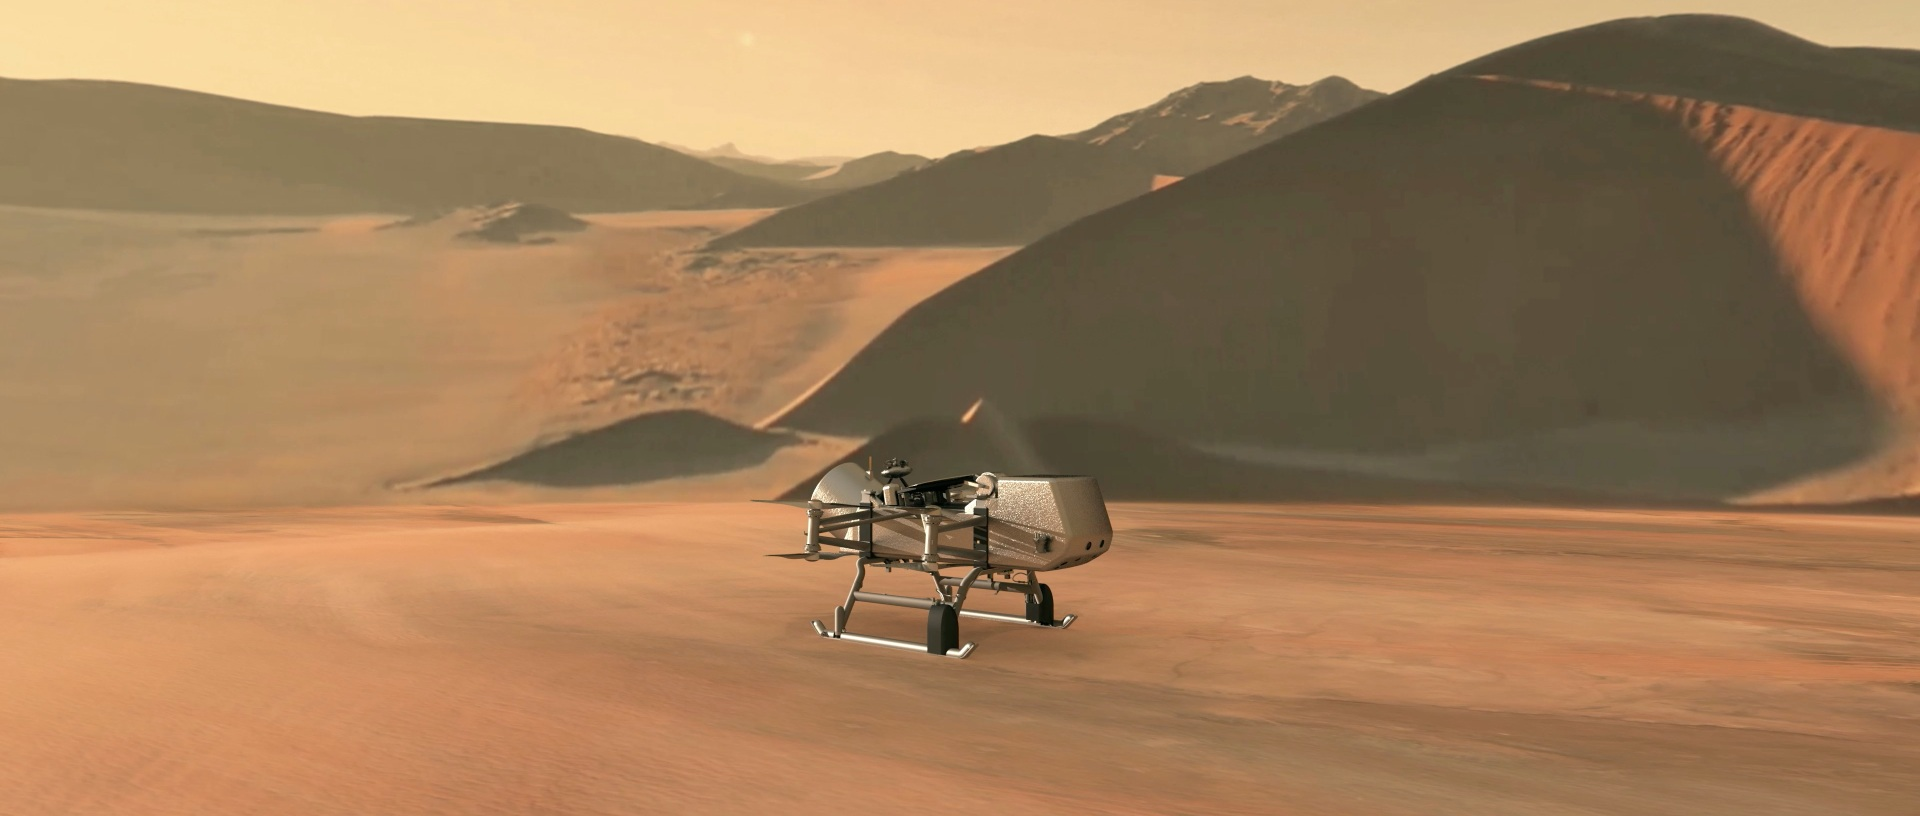 NASA / JHU-APL Illustration of the DragonFly mission on Titan